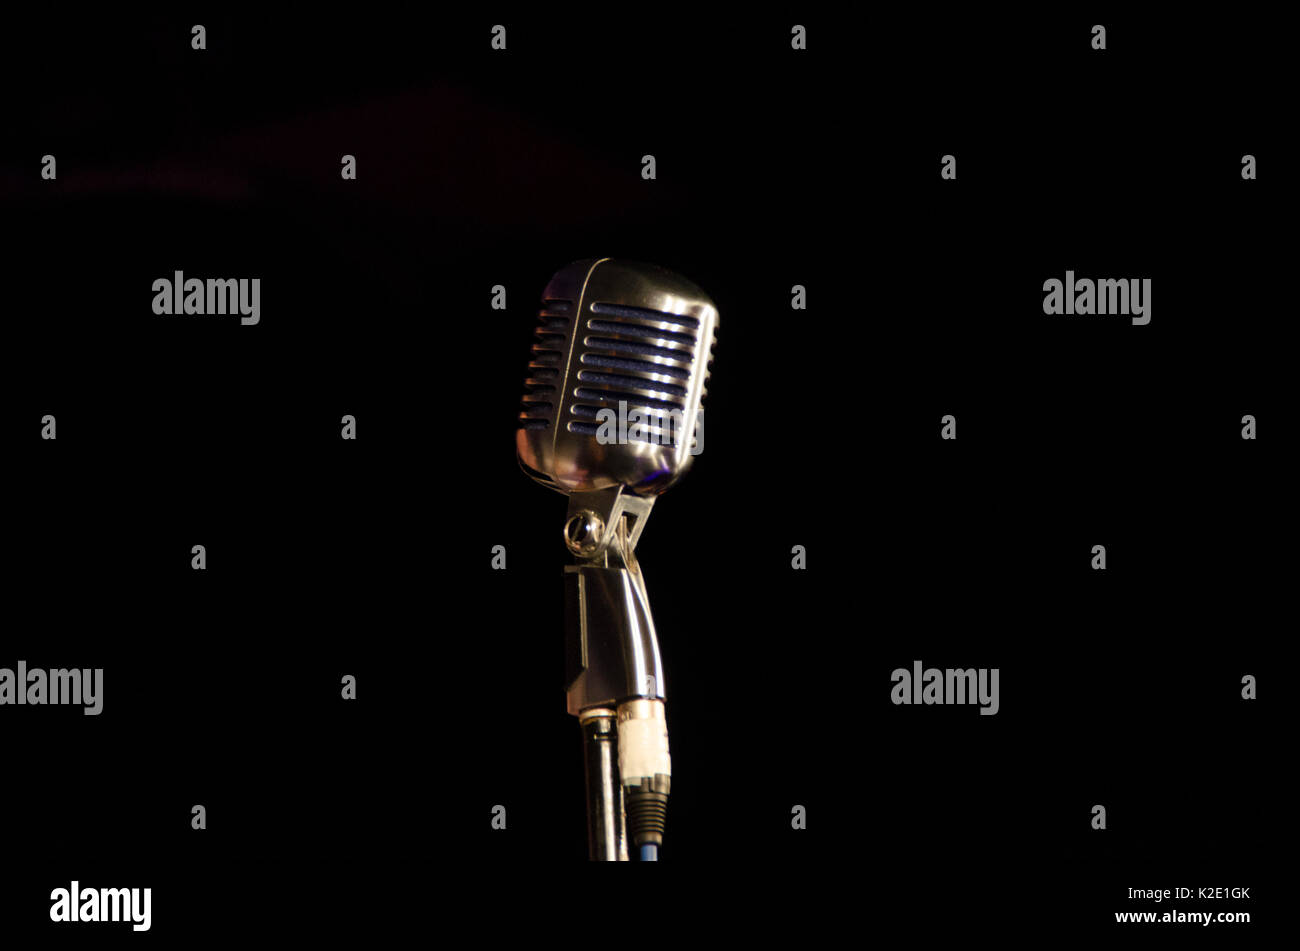 Old school vintage microphone with plain black background - Stock Image